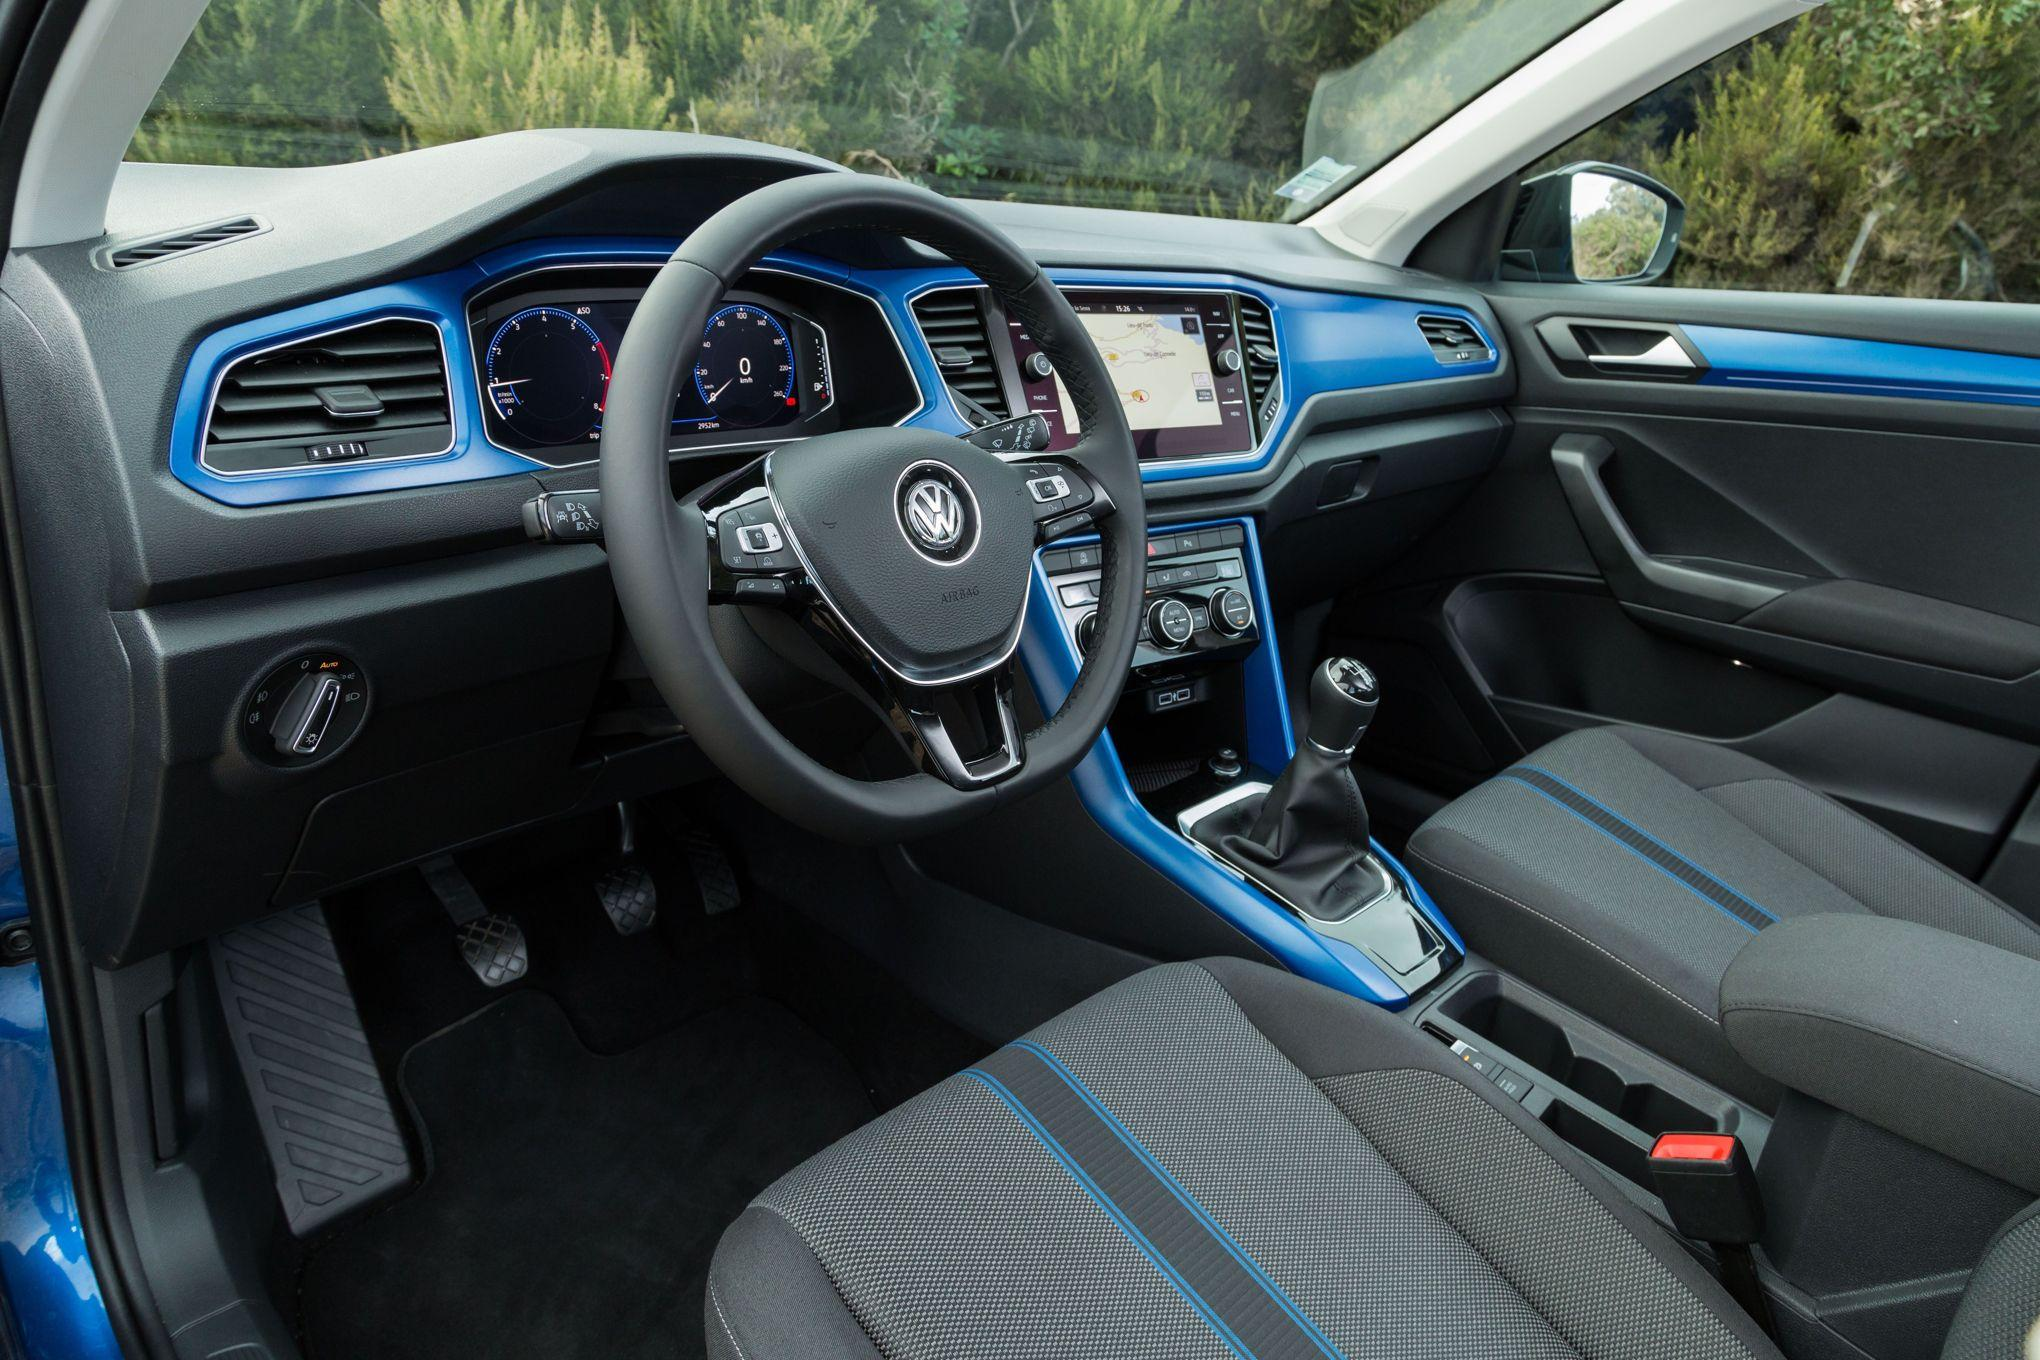 volkswagen t roc 1 0 tsi une base solide. Black Bedroom Furniture Sets. Home Design Ideas